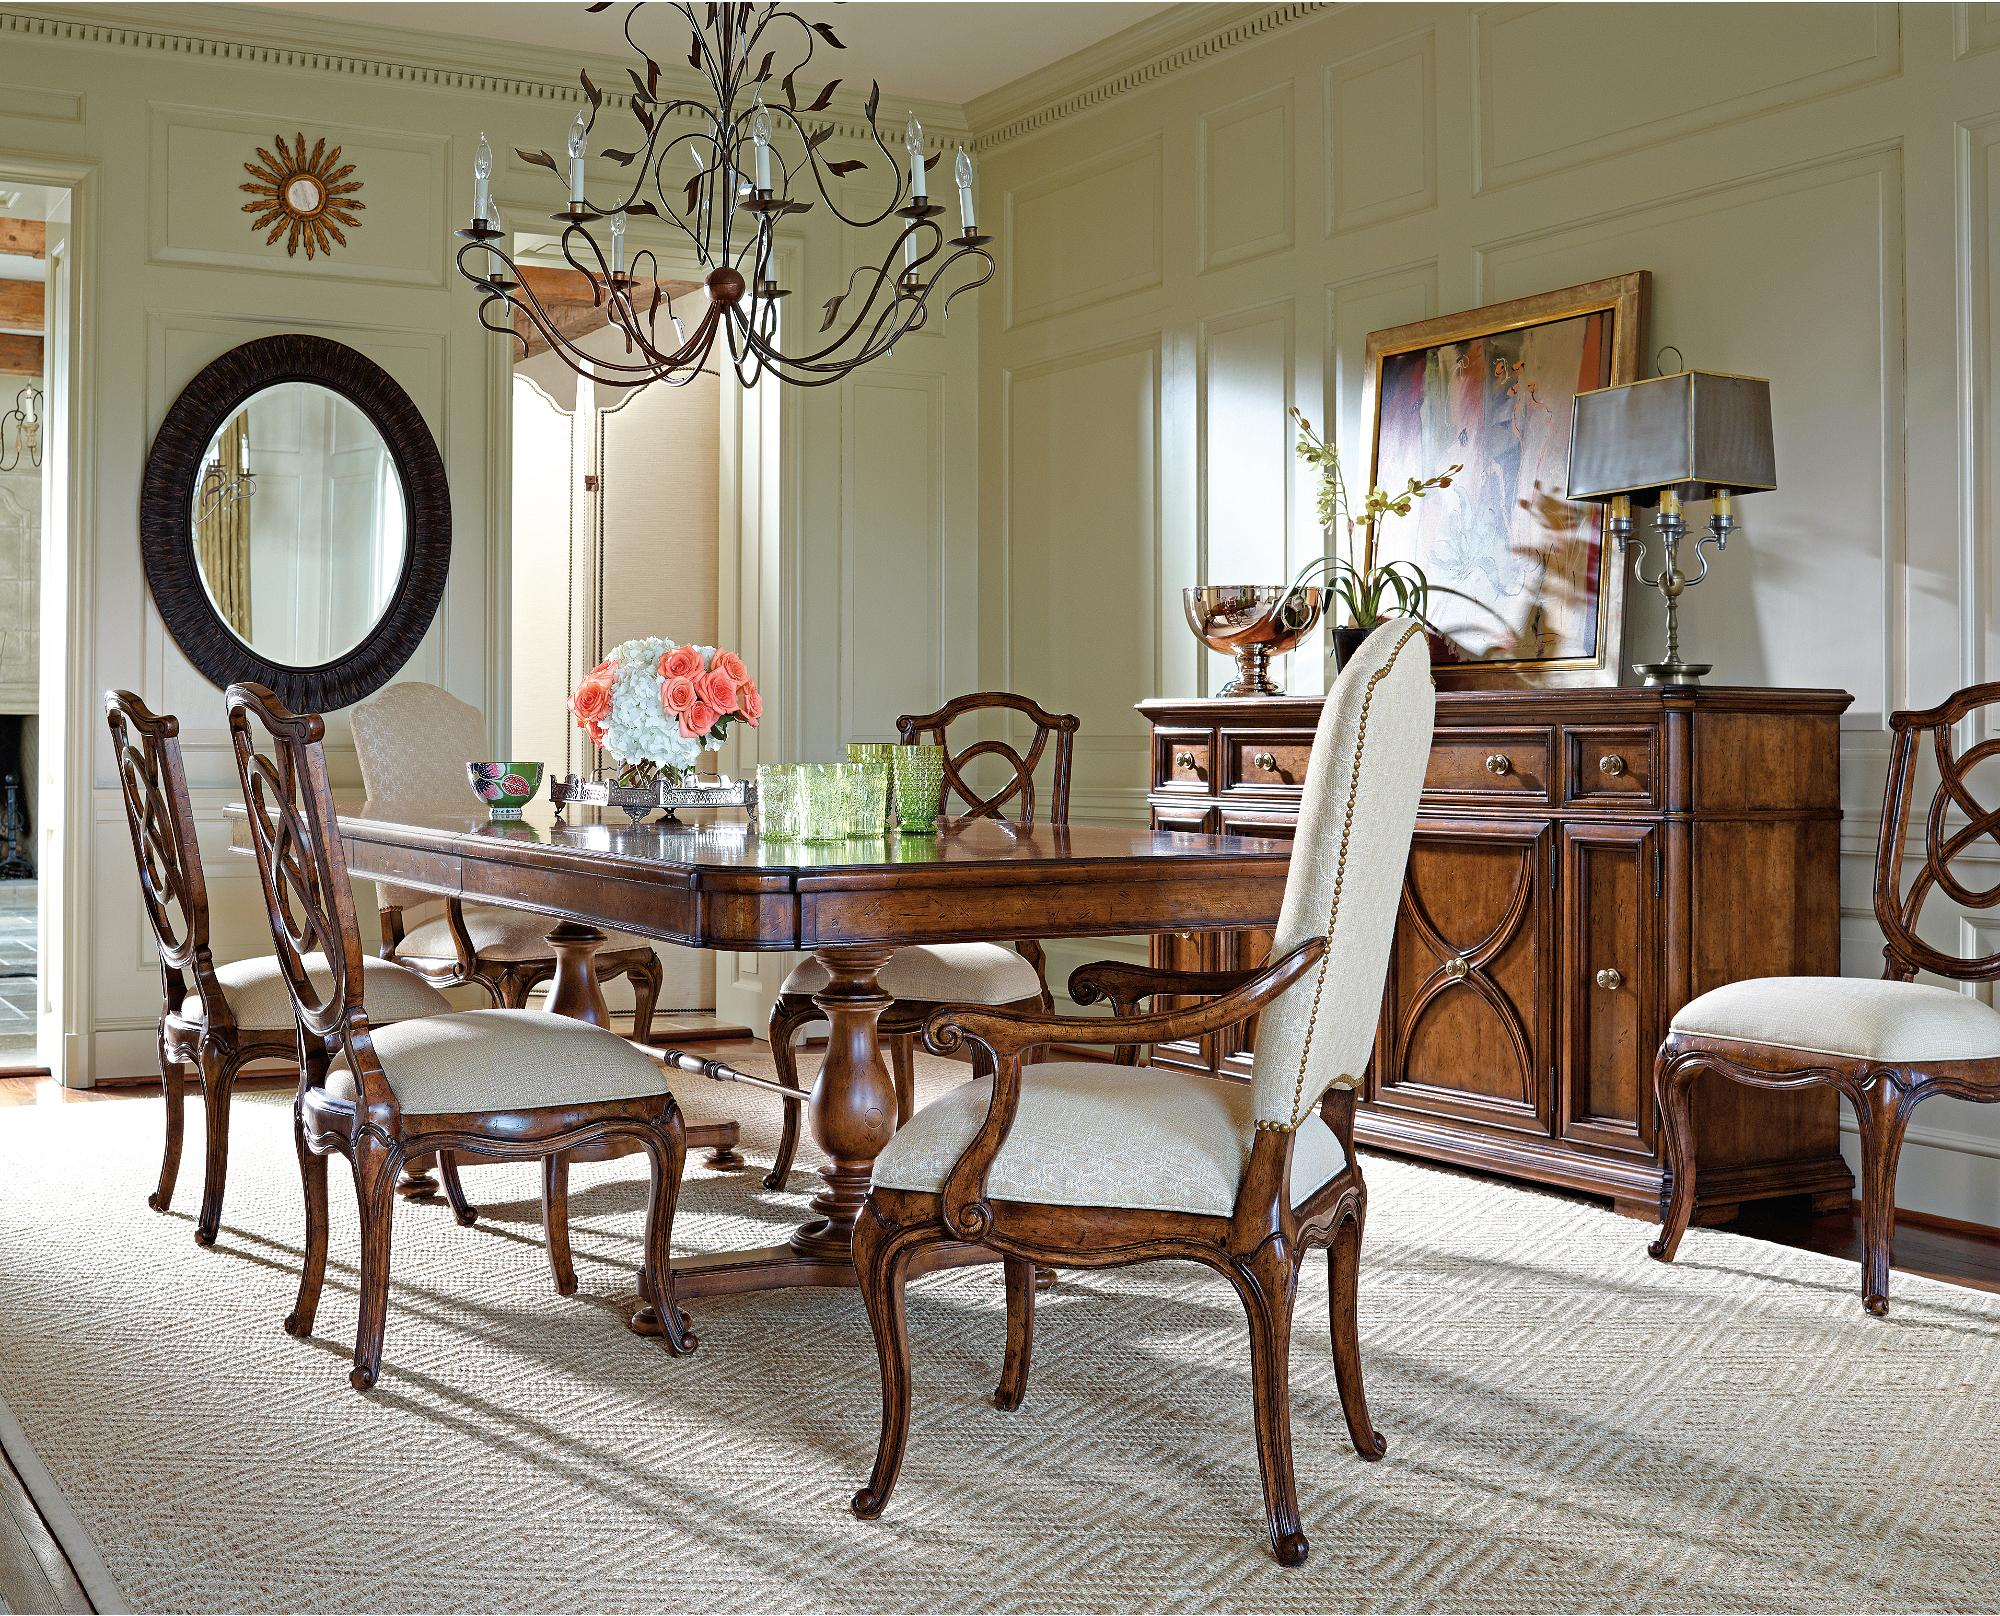 Stanley Furniture Arrondissement Formal Dining Room Group - Item Number: 222-1 Dining Room Group 1